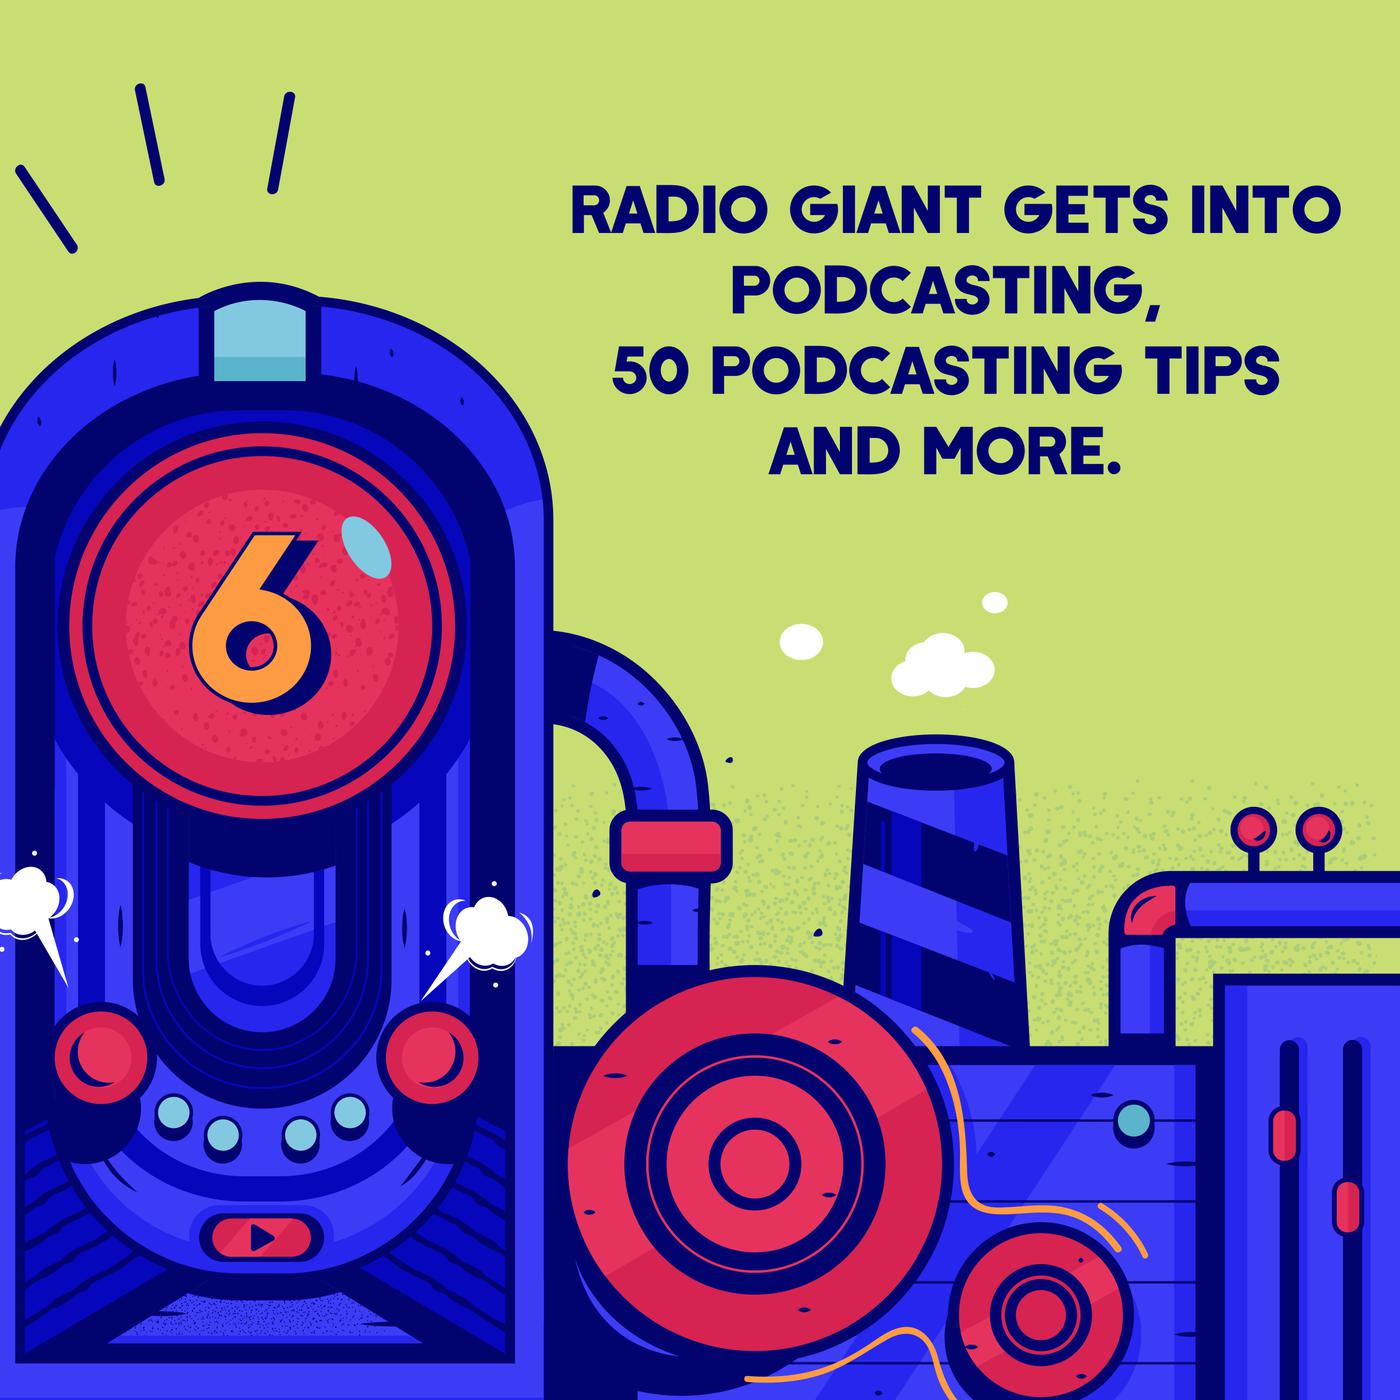 Episode 6 (TWIP) - Radio Giant Gets into Podcasting, 50 Podcasting Tips, and More.